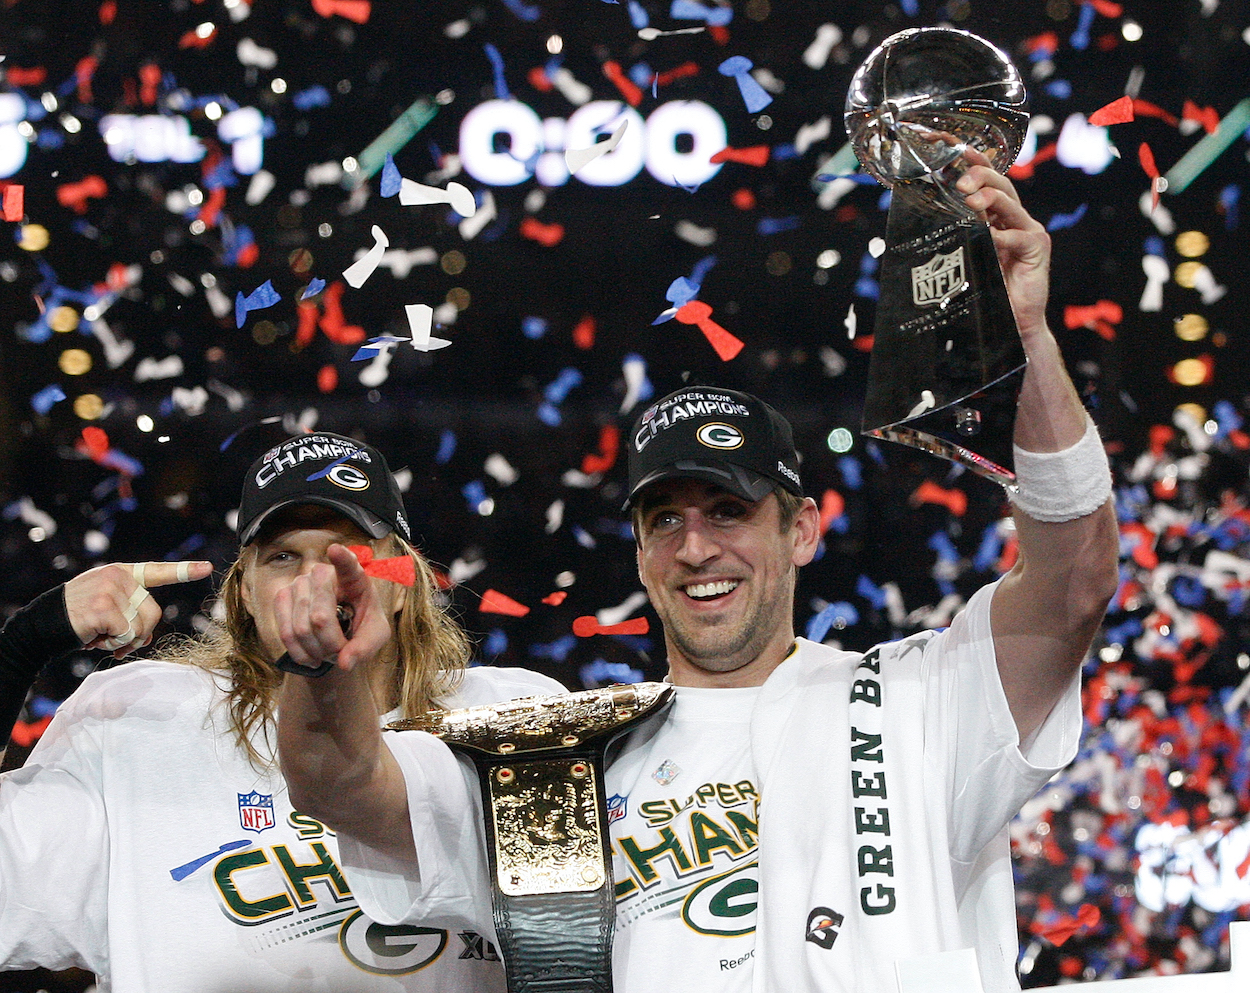 Aaron Rodgers celebrates winning the Super Bowl in 2011